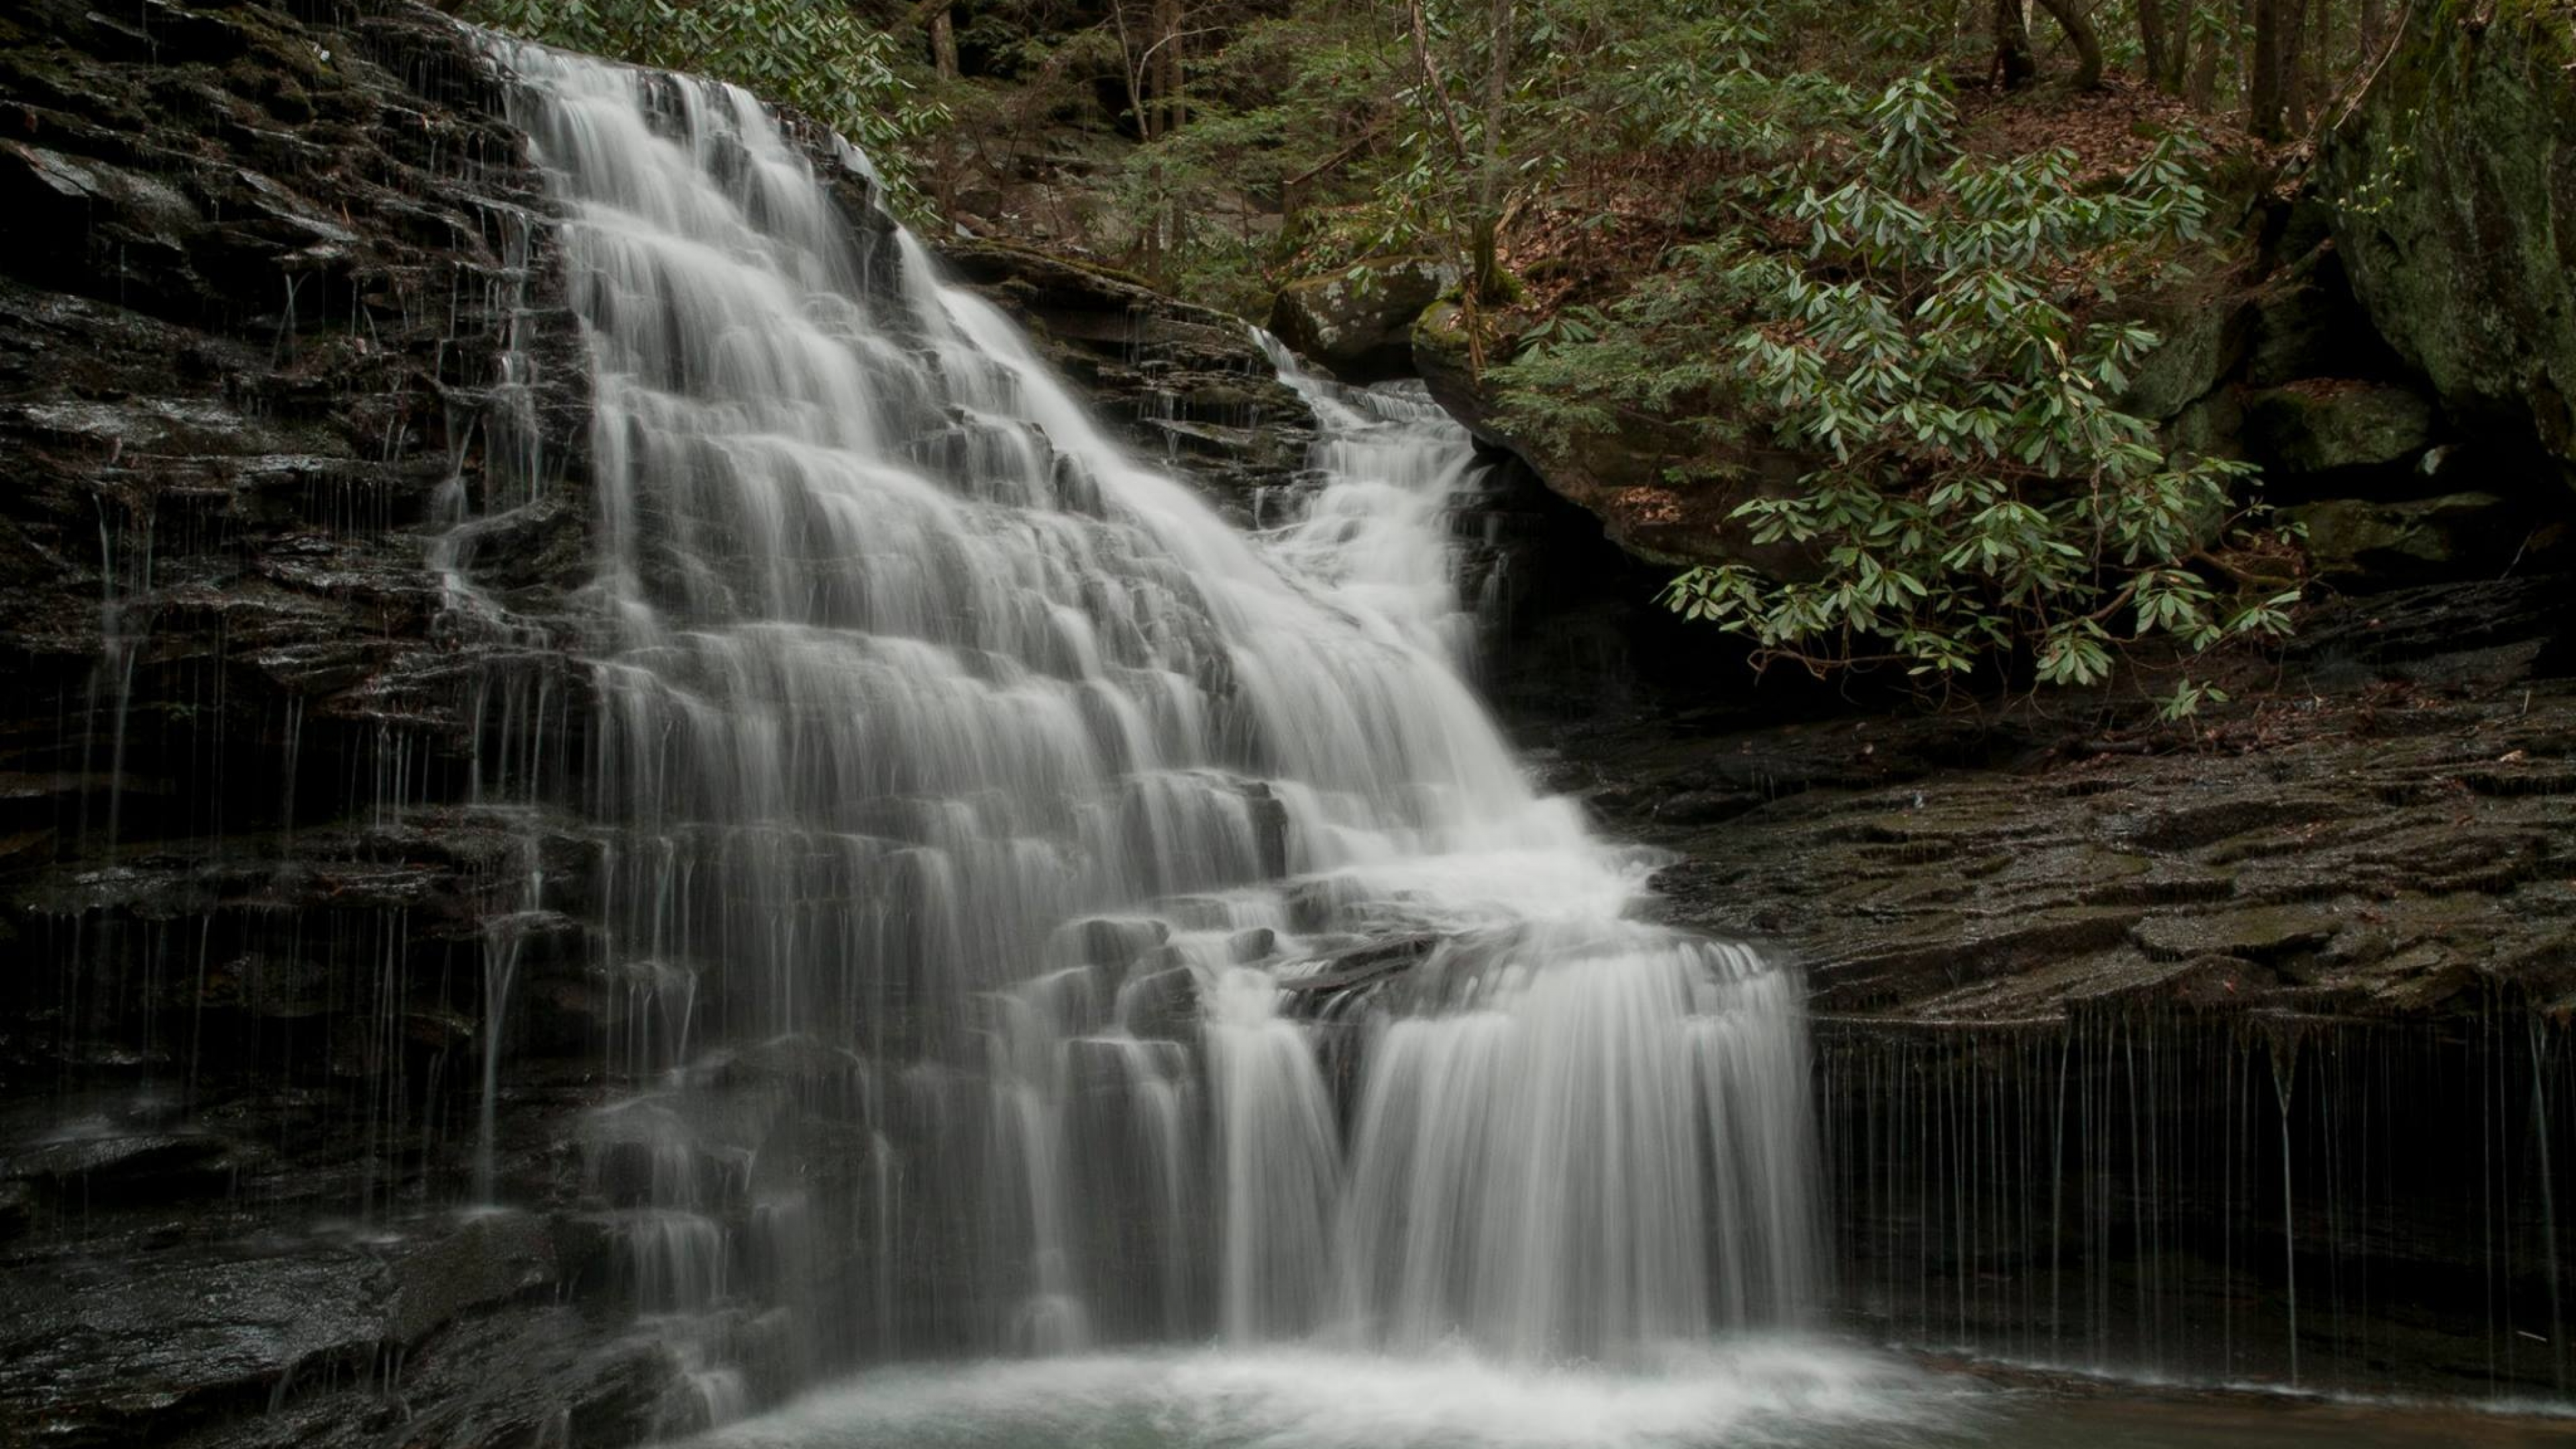 Small waterfall cascades down slate rocks into a pool surrounded by lush greenery